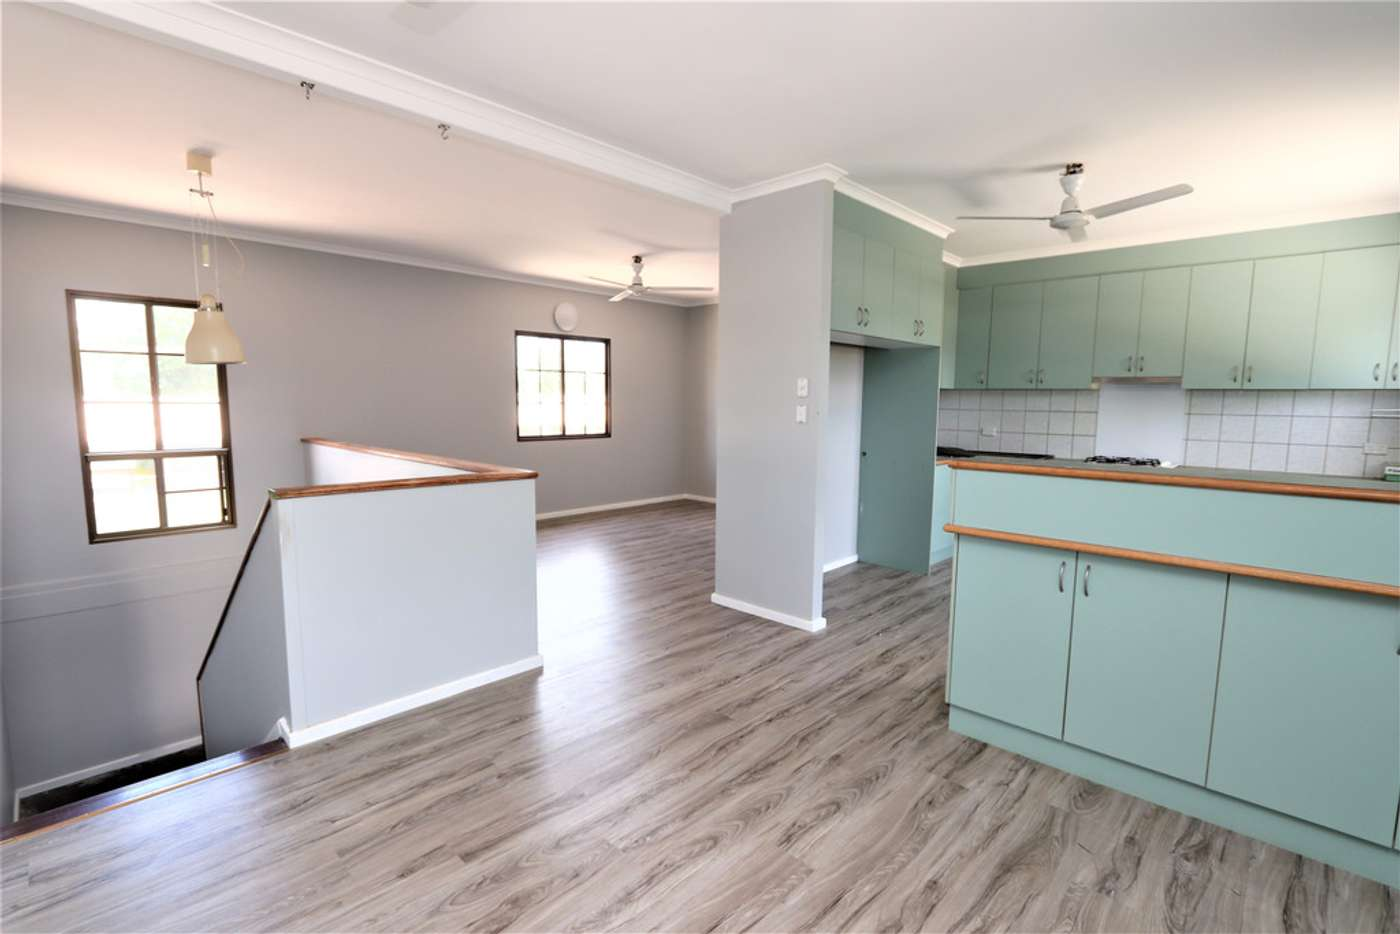 Seventh view of Homely house listing, 14 Herbert Court, Katherine NT 850